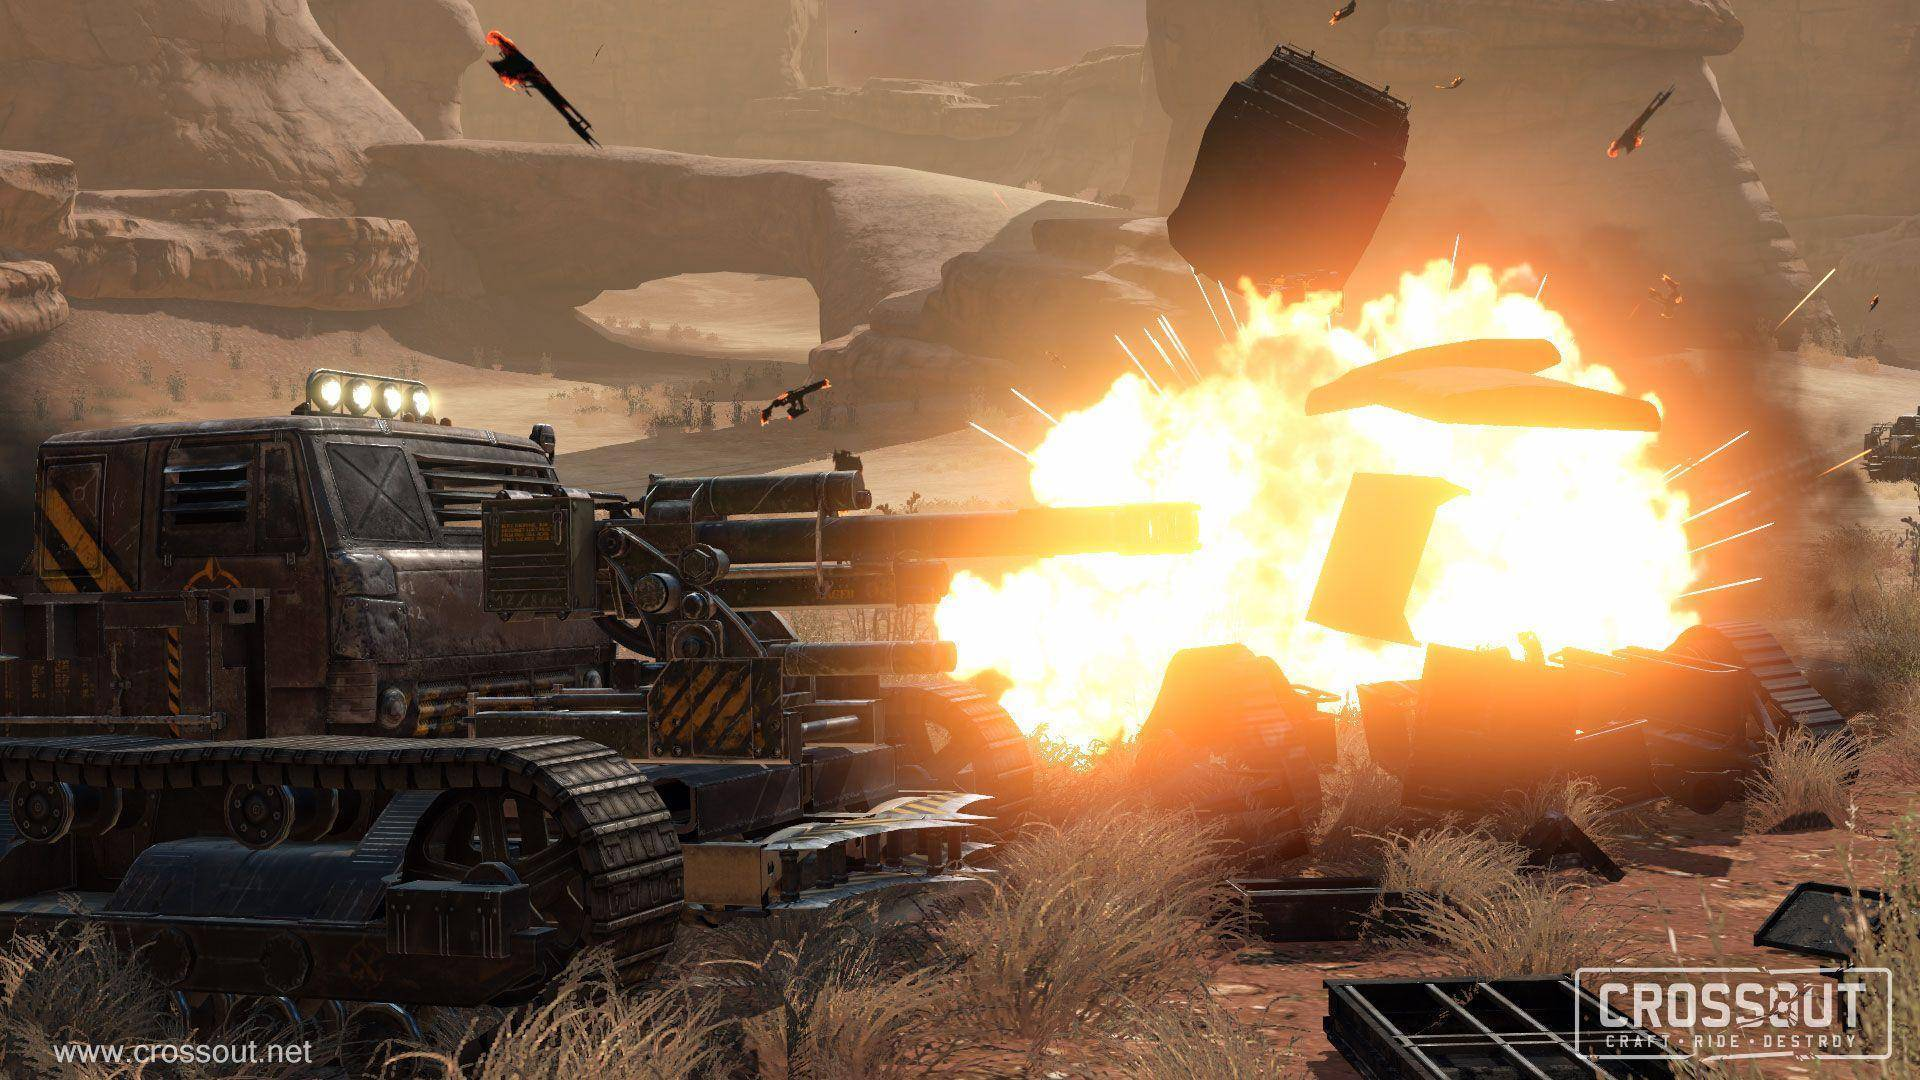 Article title about Crossout